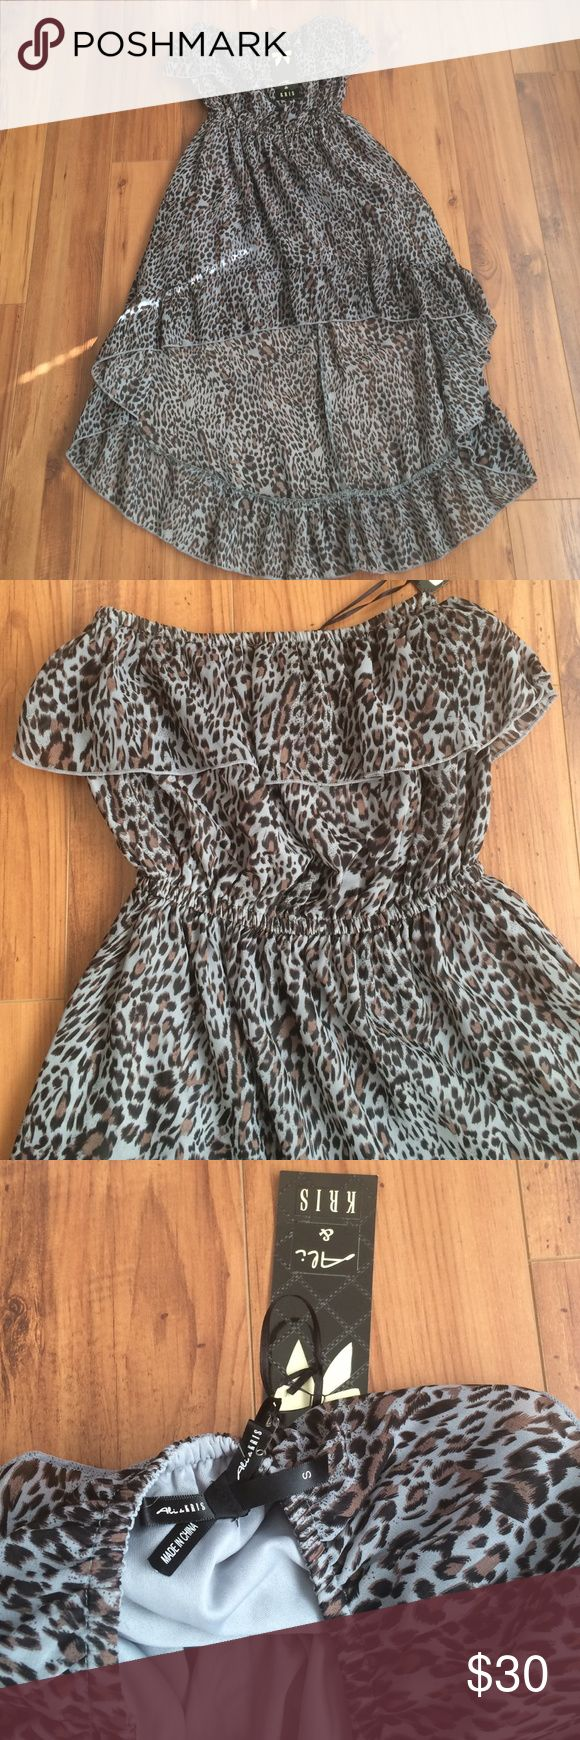 Beautiful brand new cheetah print high low dress S I bought this beautiful high low dress and never got a chance to wear it. It is a blue brown cheetah print and strapless. Size is small or S. Dresses High Low